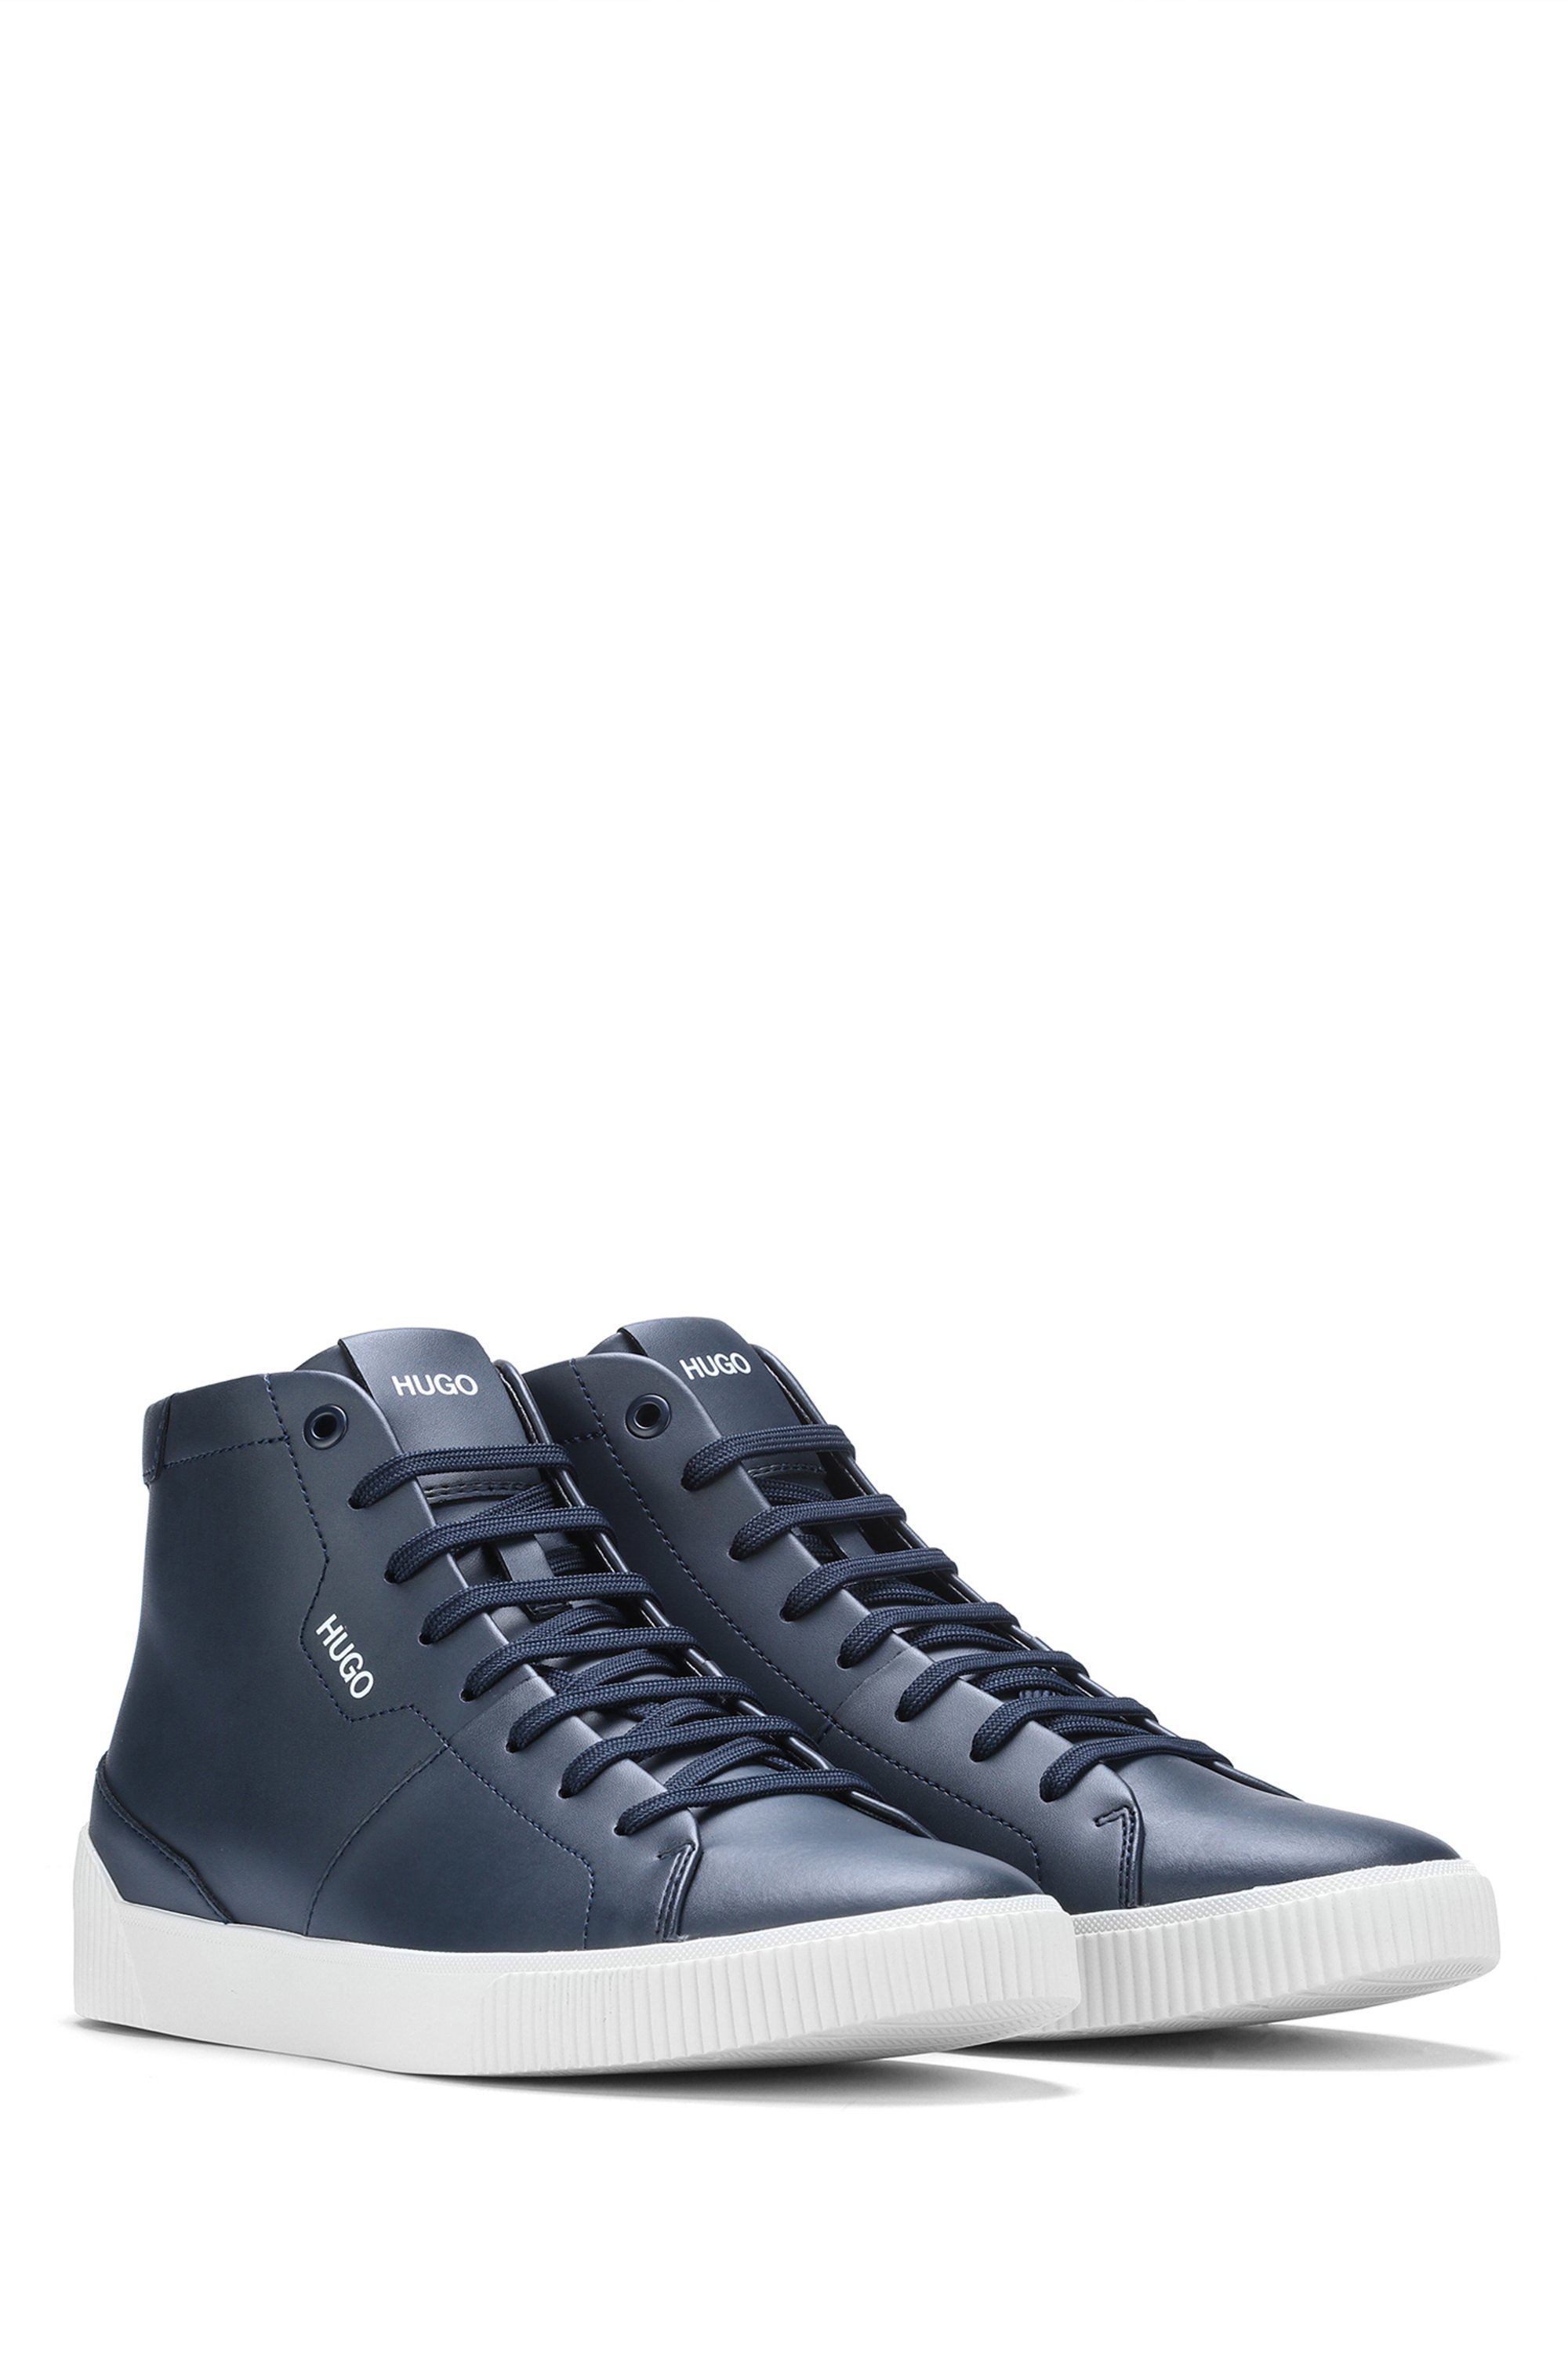 High-top trainers in leather with logo details